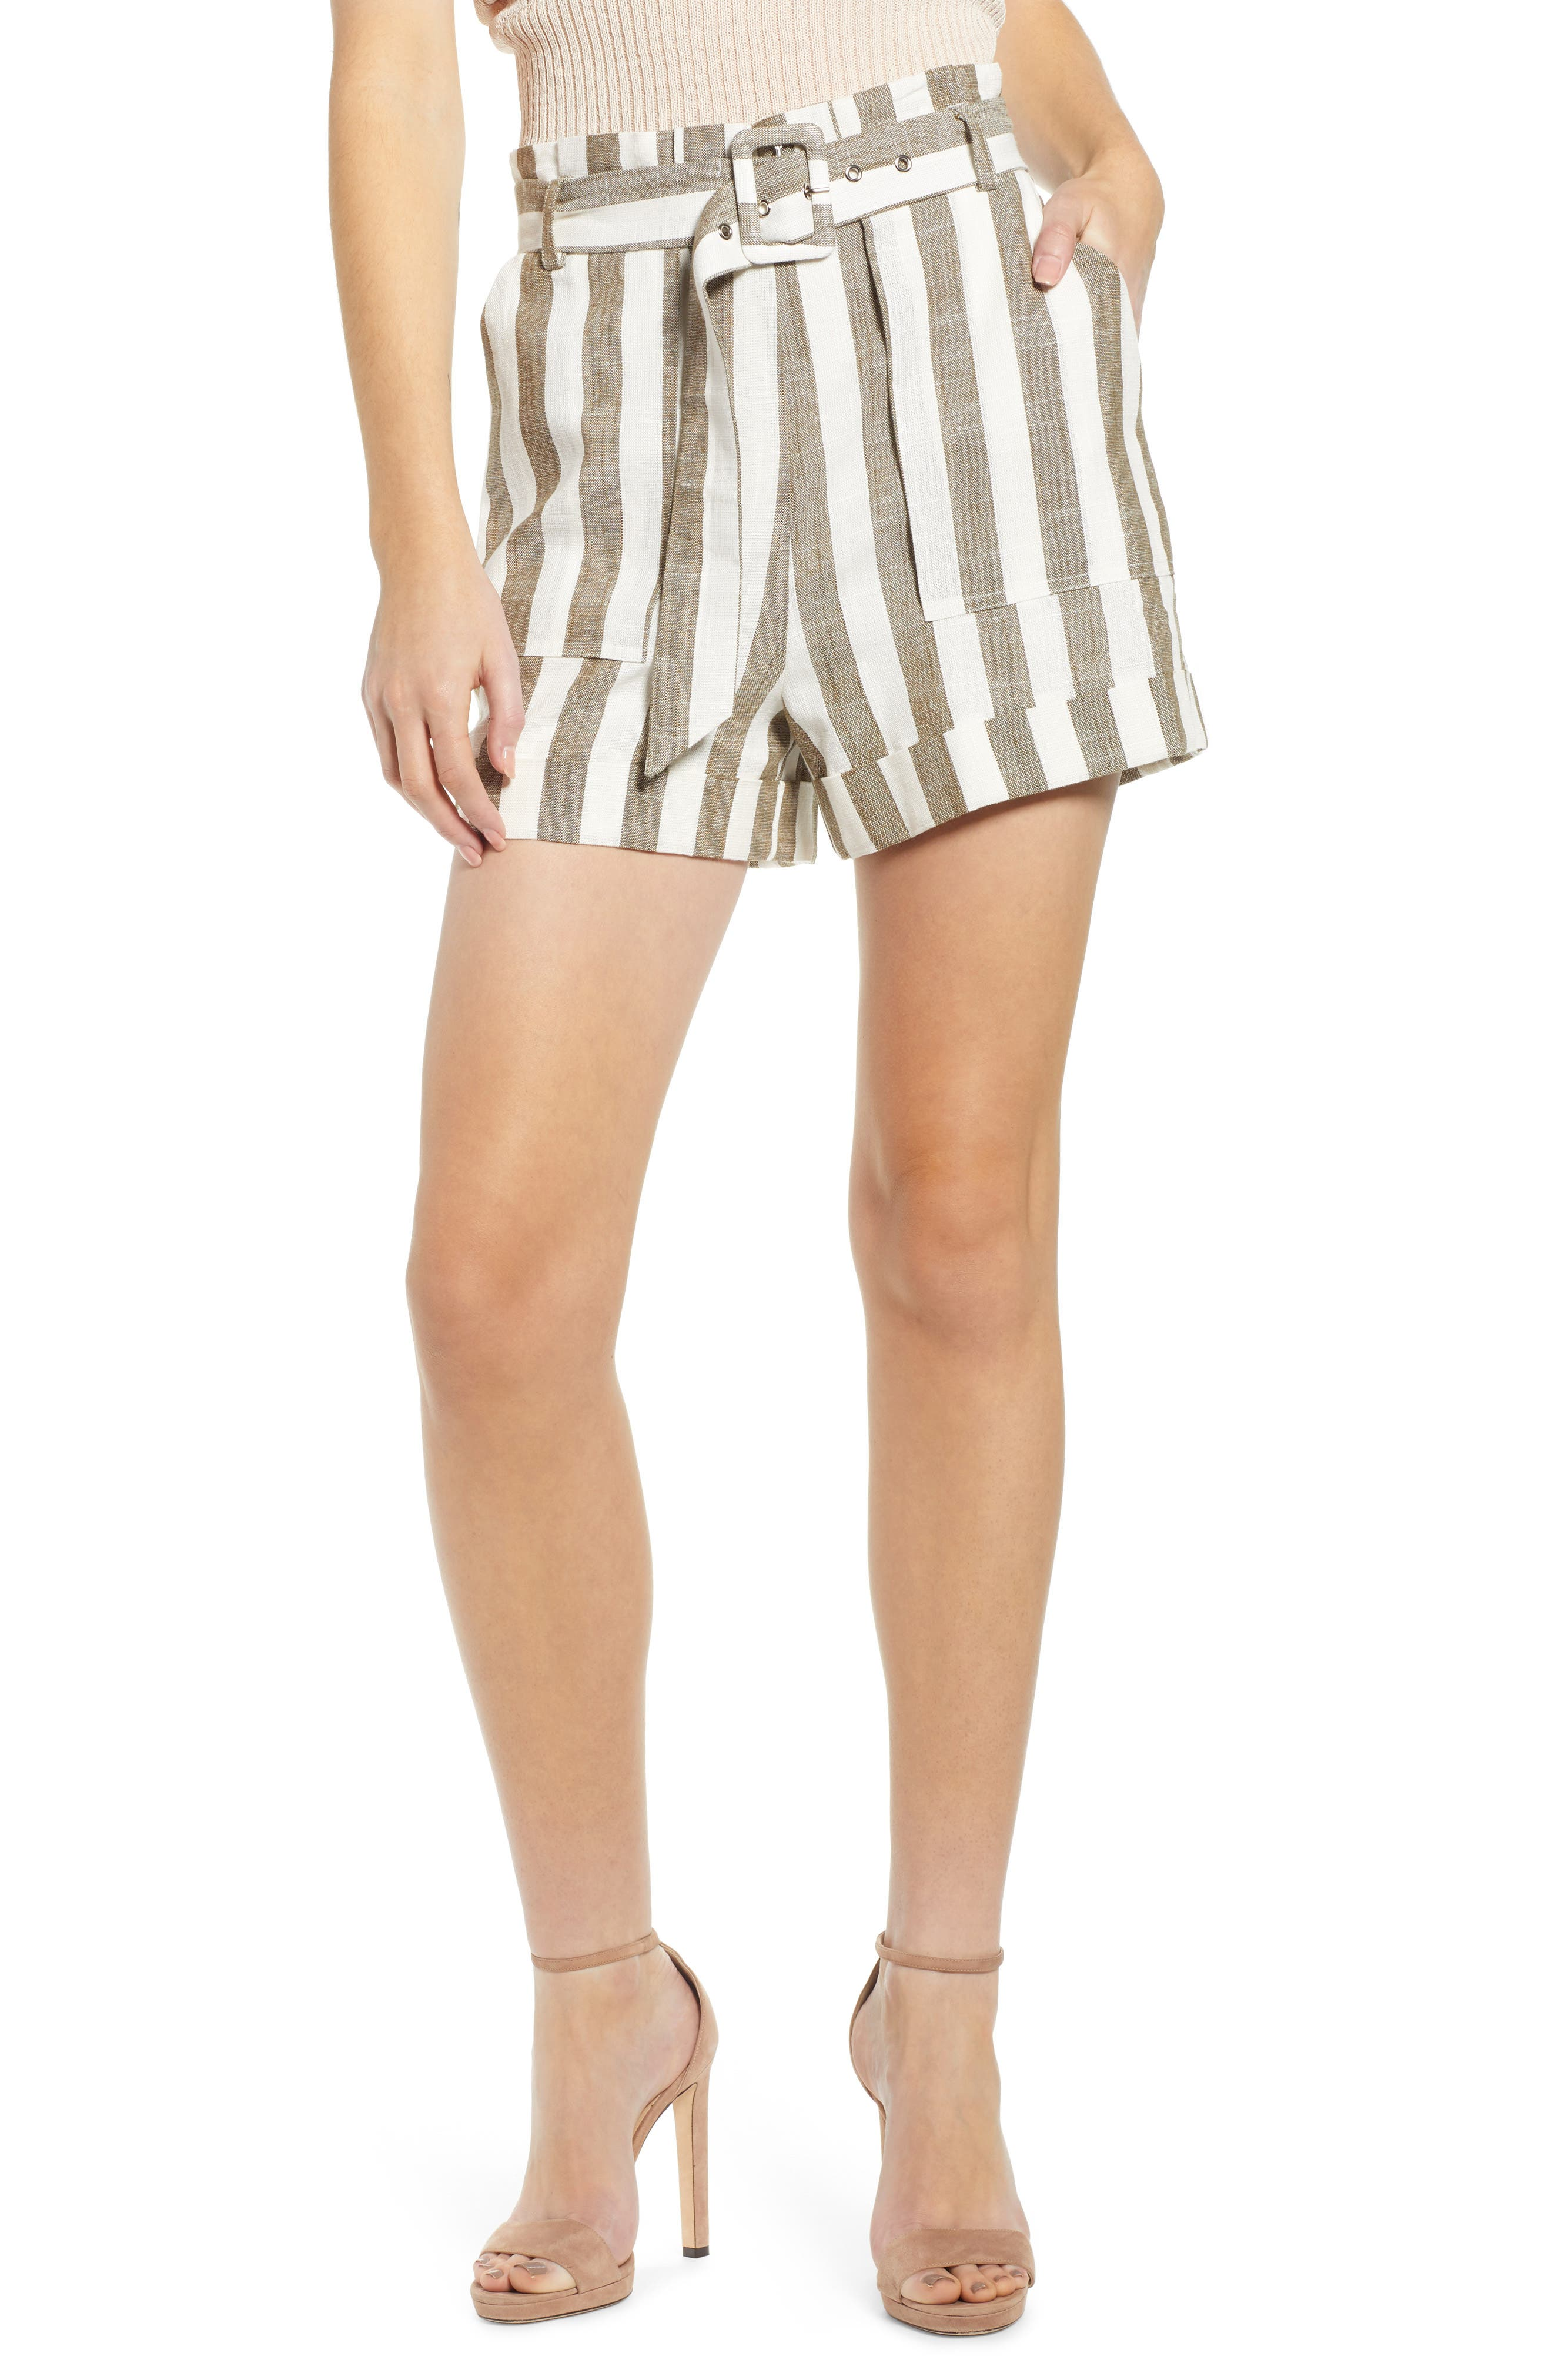 CHRISELLE LIM COLLECTION, Chriselle Lim Cherie Shorts, Main thumbnail 1, color, OLIVE STRIPE